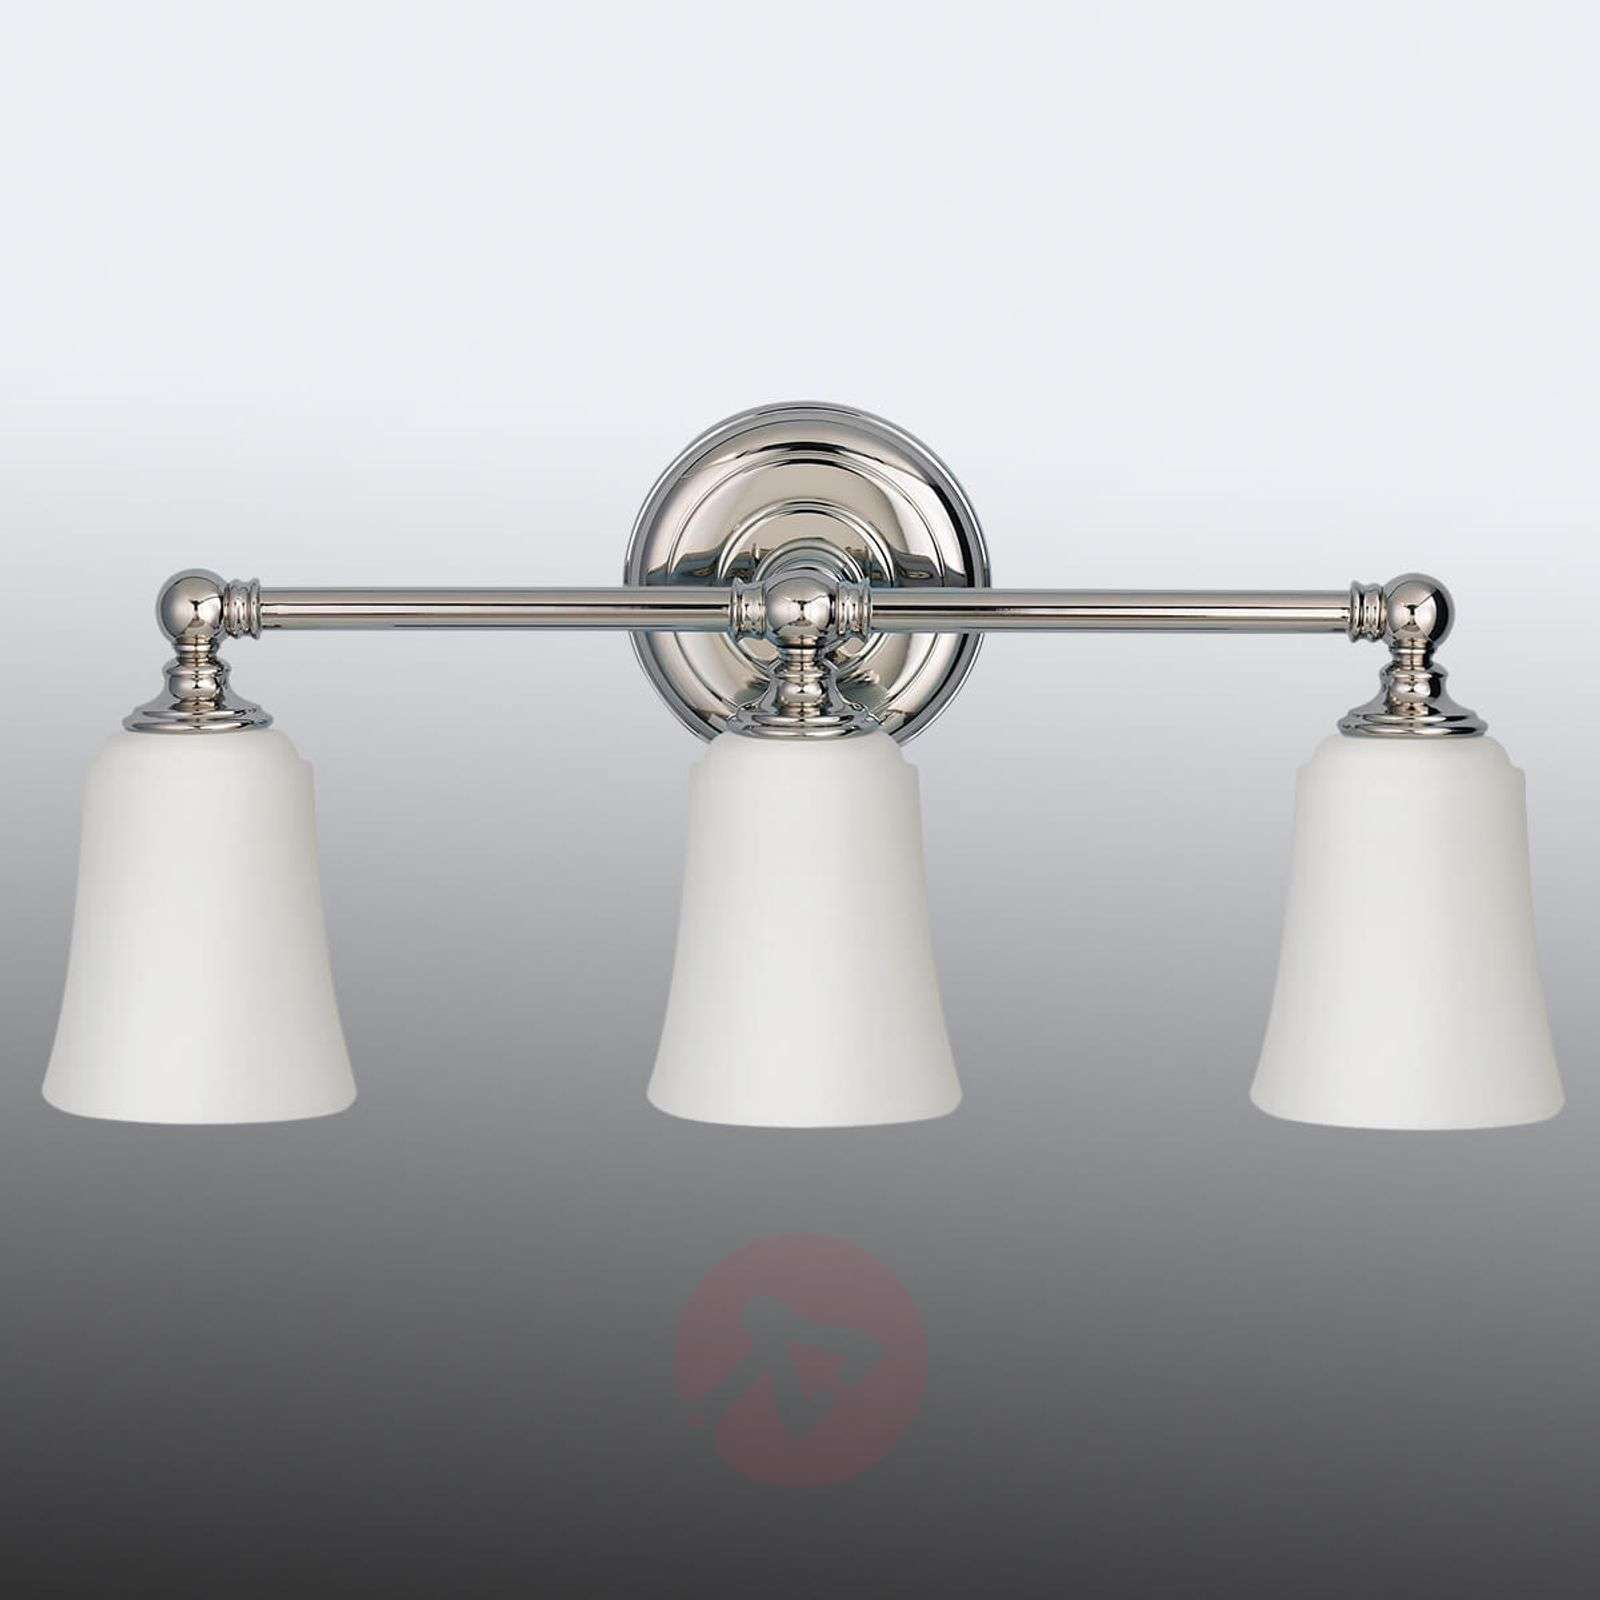 Three-bulb bathroom wall lamp Huguenot Lake-3048642-01